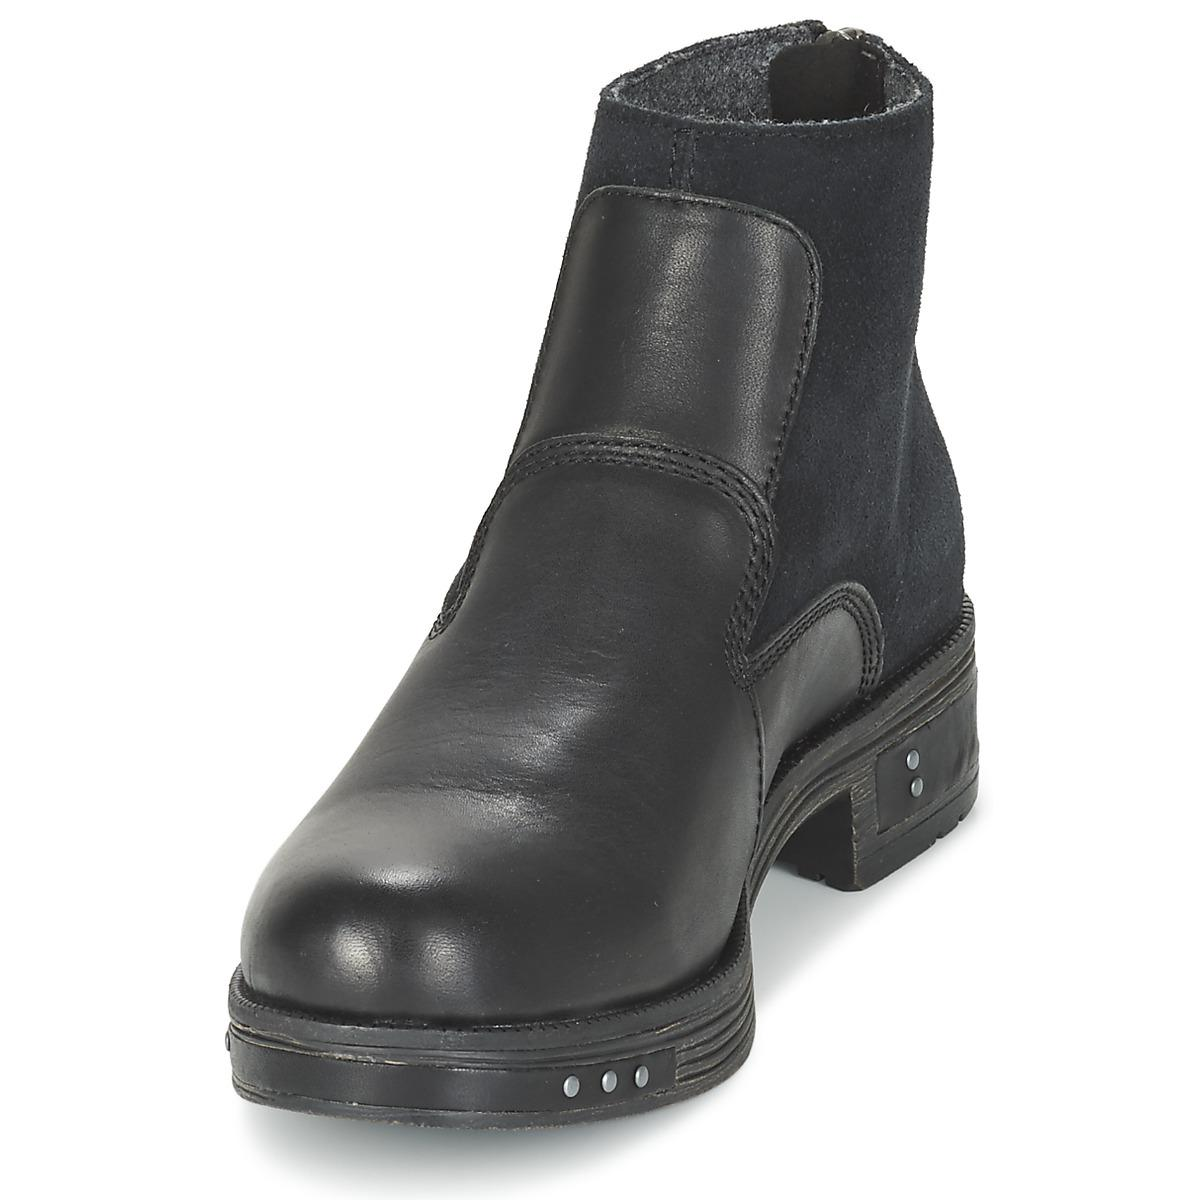 Discount Many Kinds Of Buy Cheap Purchase Caterpillar ZOE women's Low Ankle Boots in 7gb5t3MVwE